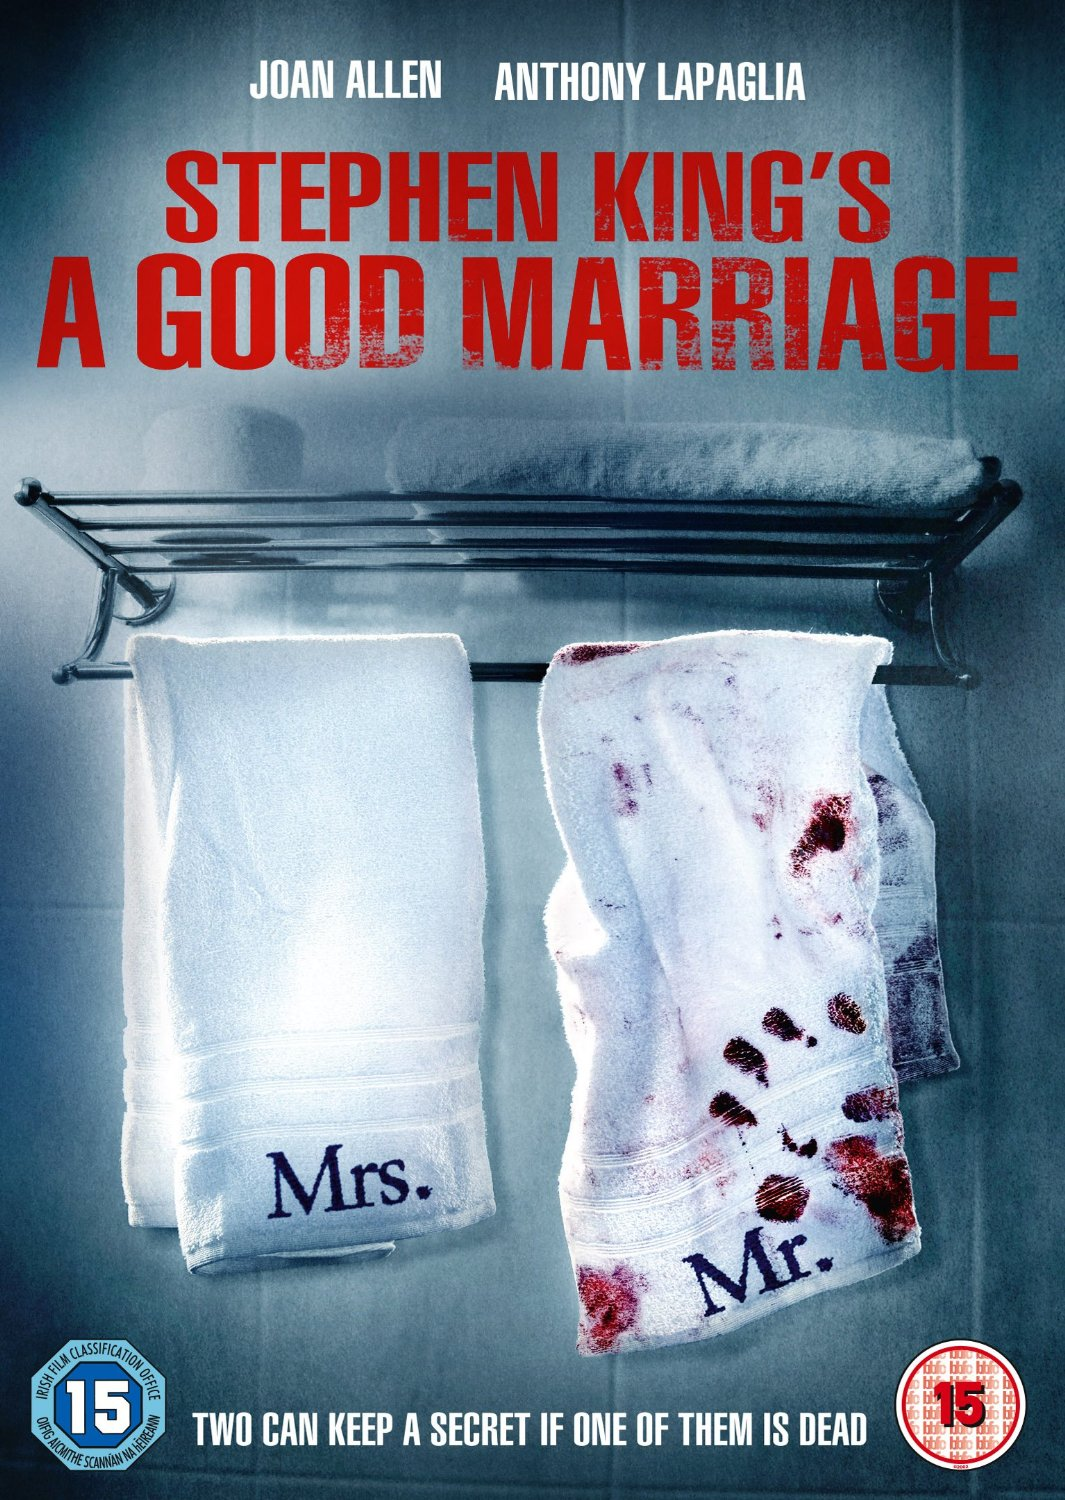 A Good Marriage (DVD)